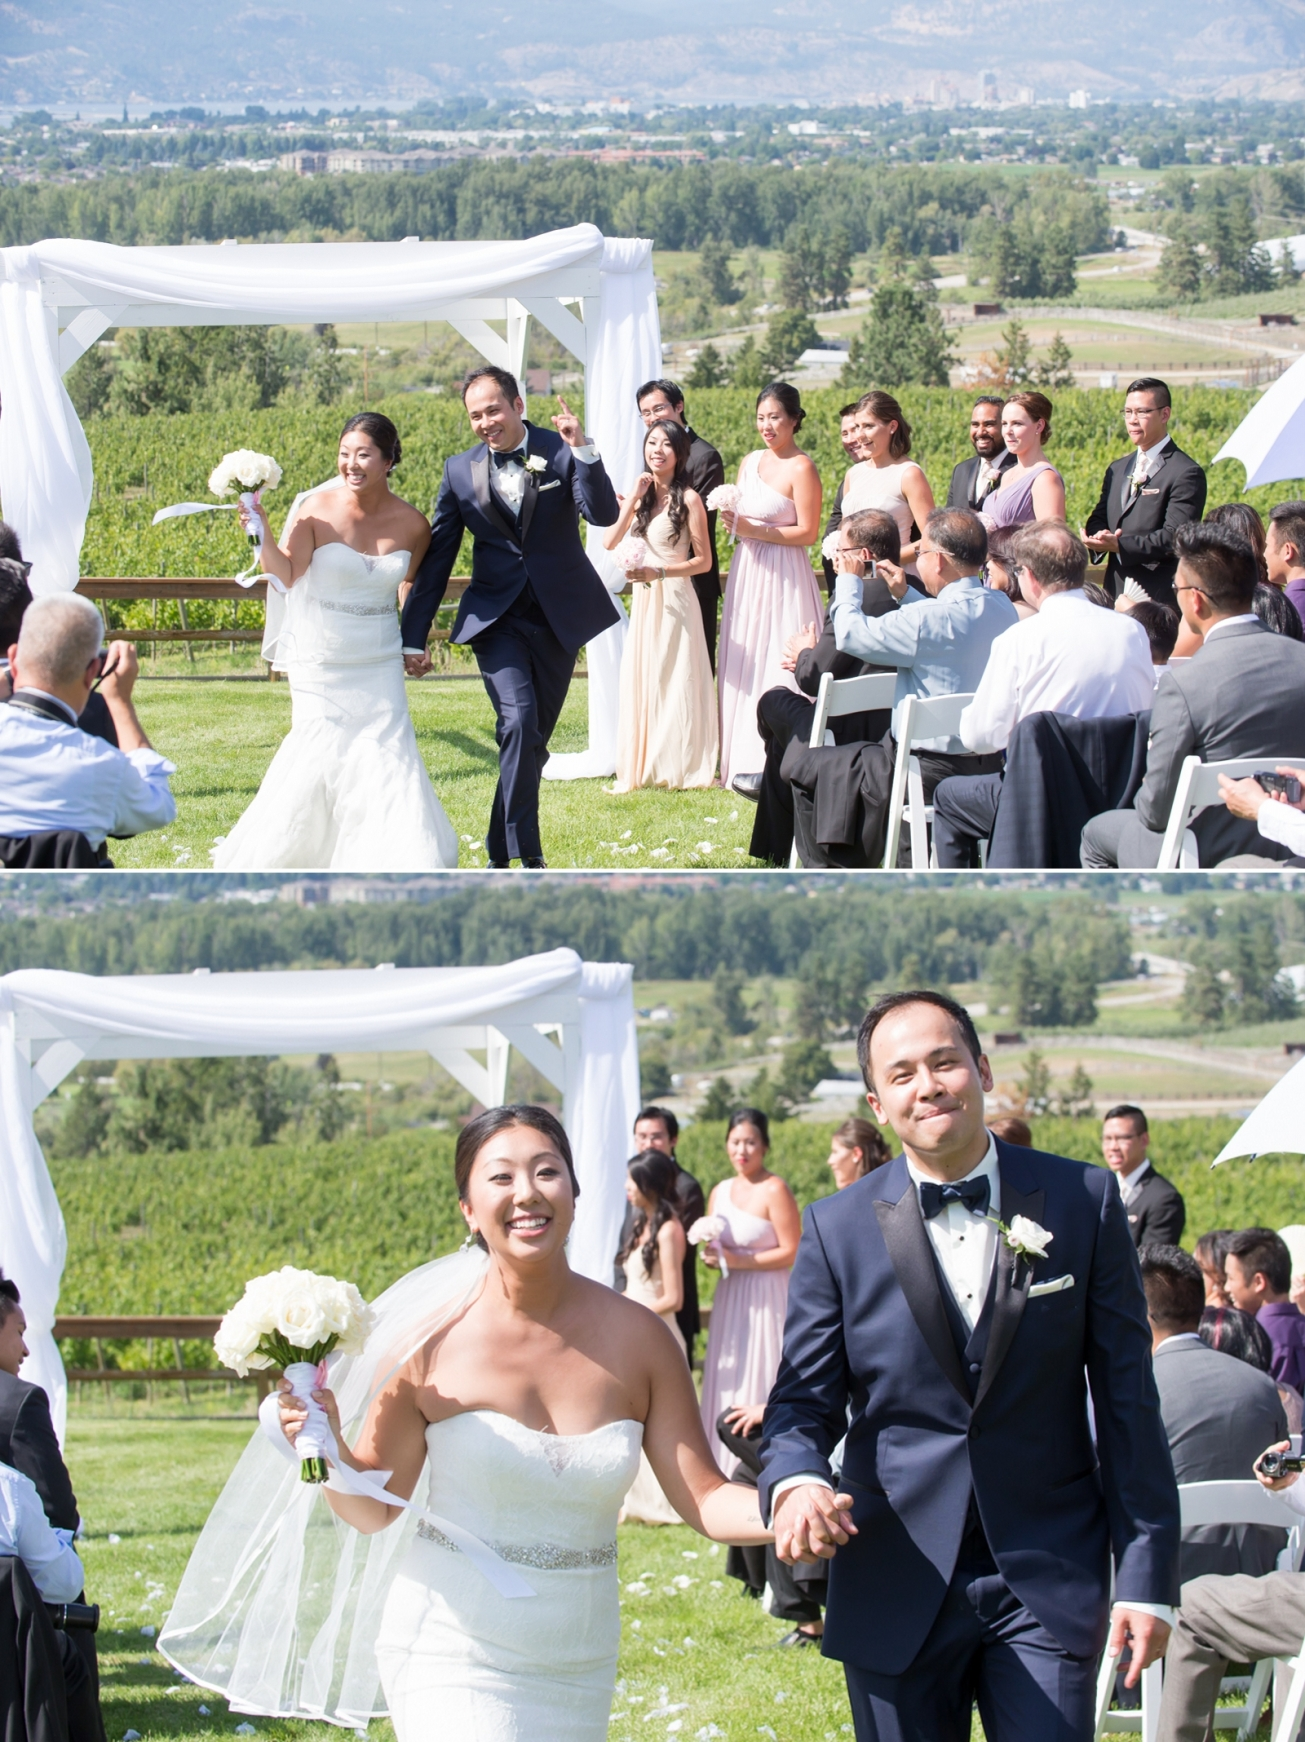 Tantalus Winery Wedding - Kelowna Okanagan - Suzanne le Stage 7